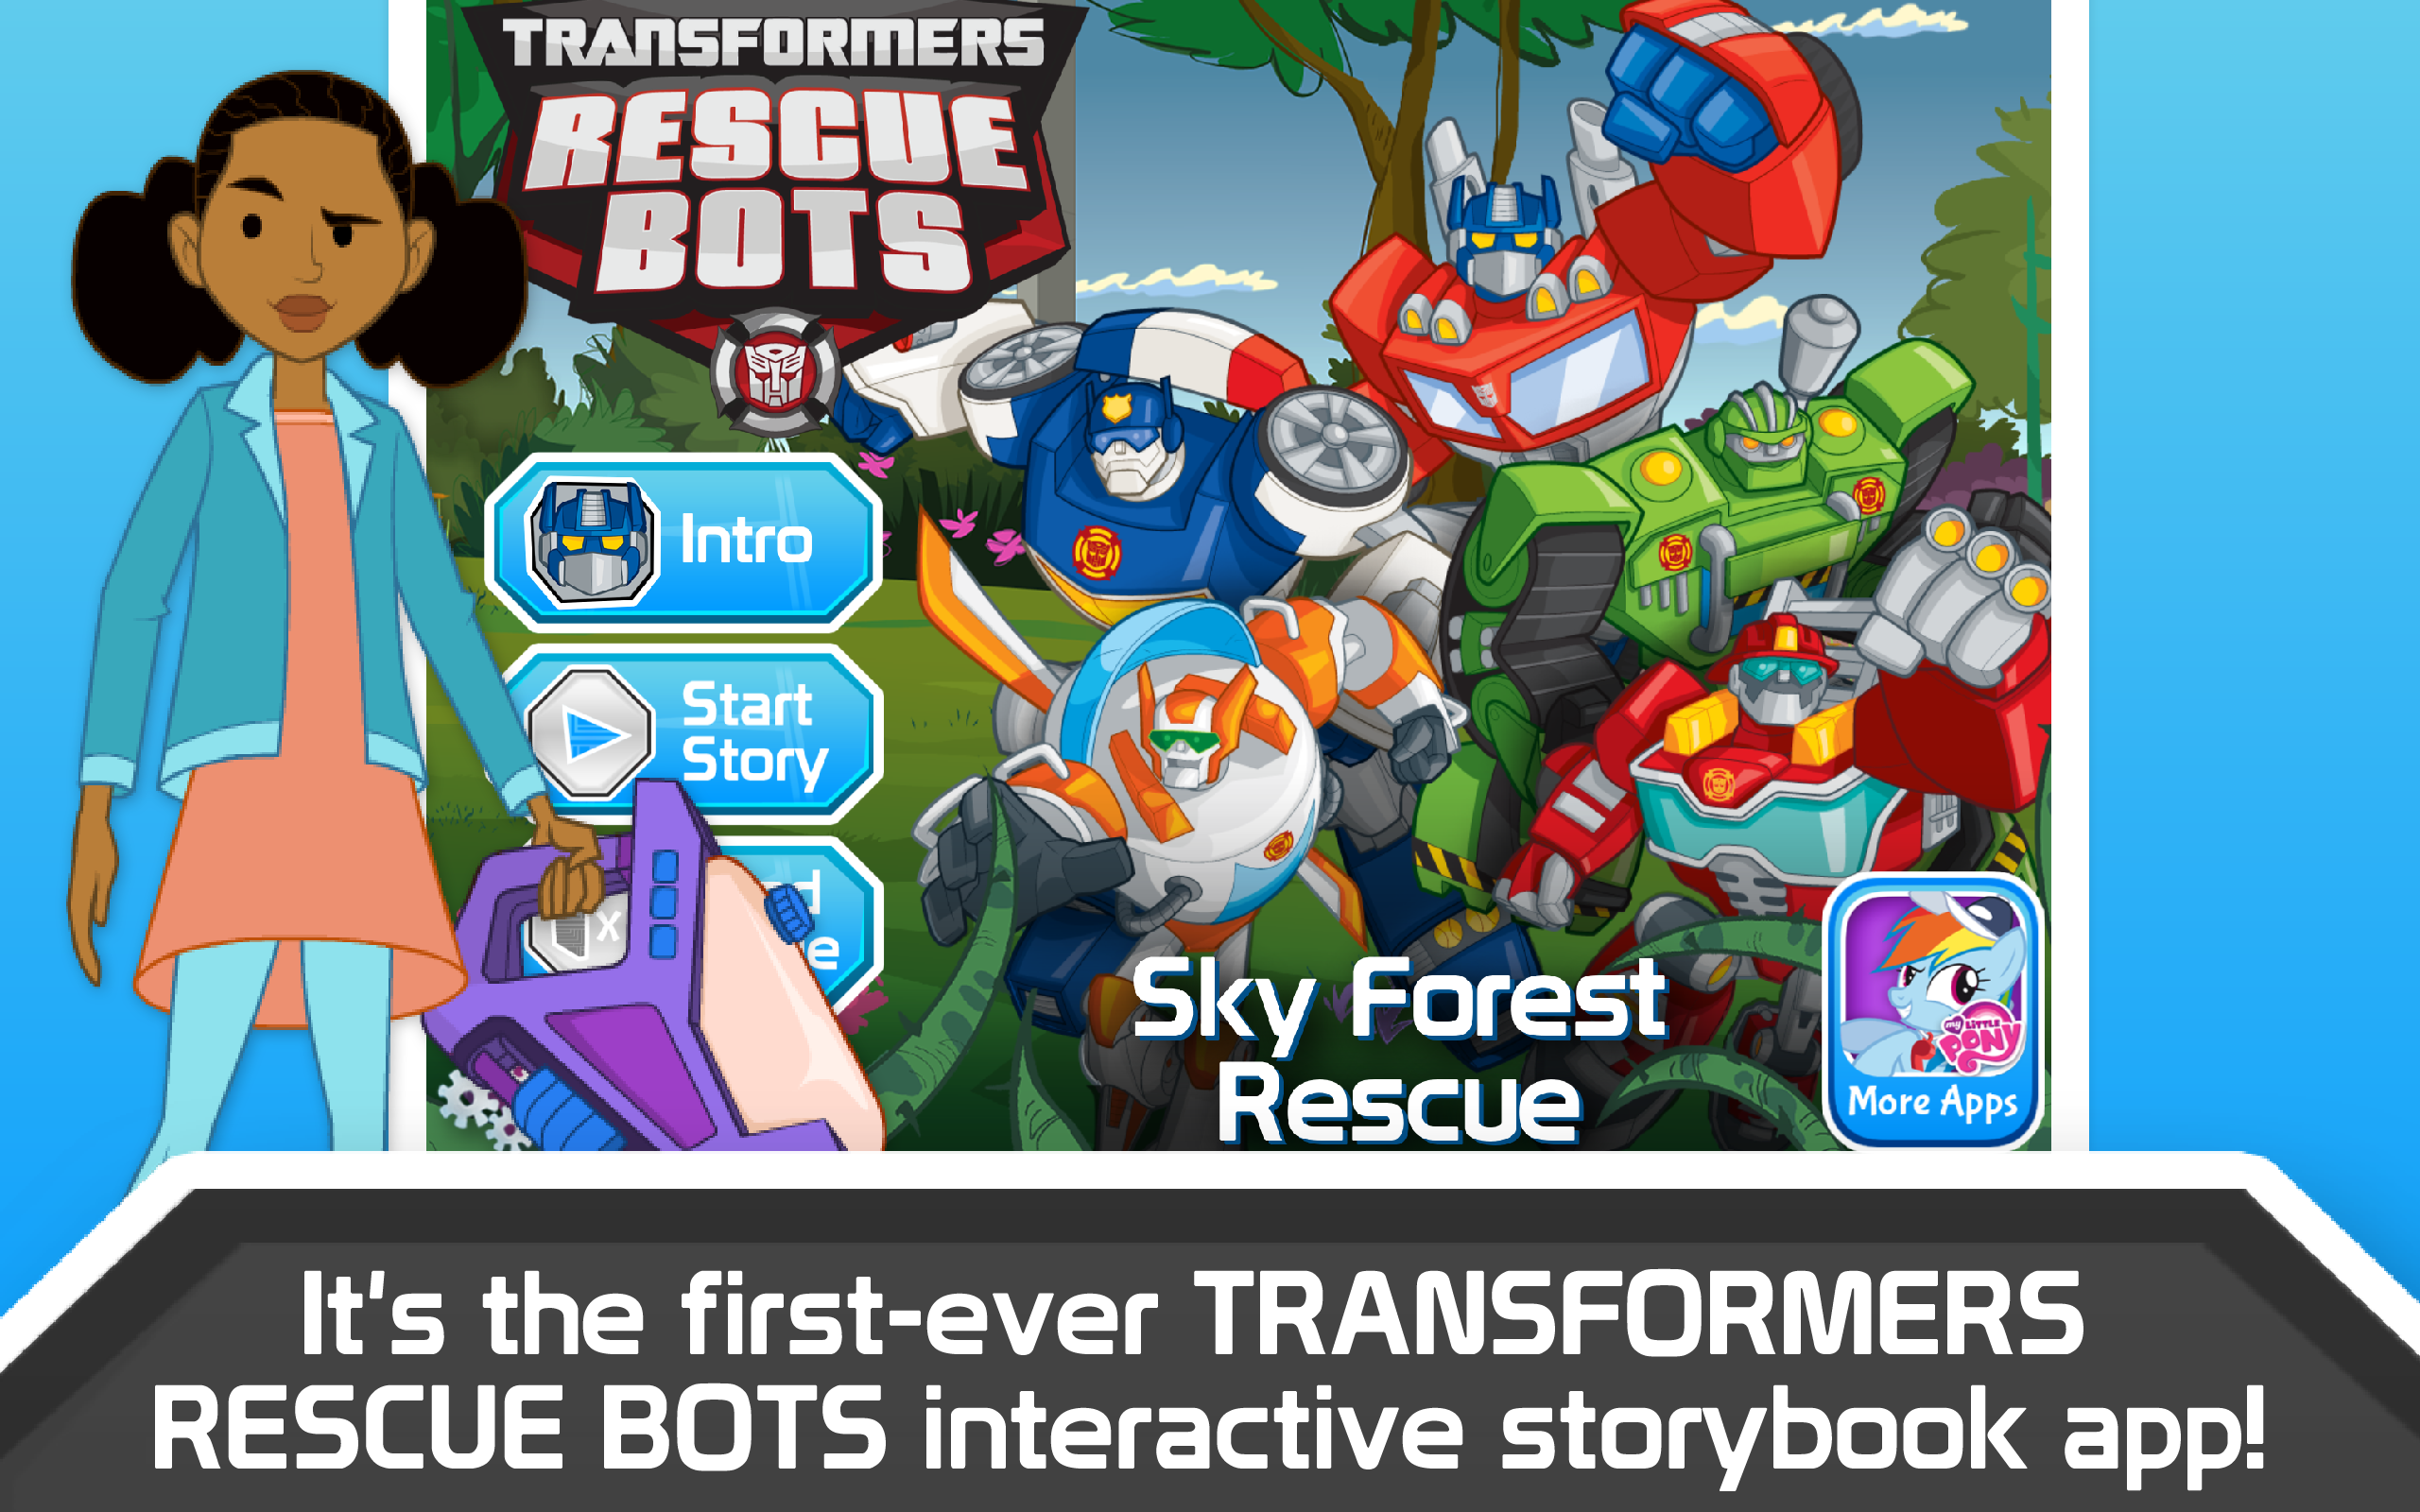 Transformers Rescue Bots: Sky Forest Rescue: Amazon.co.uk